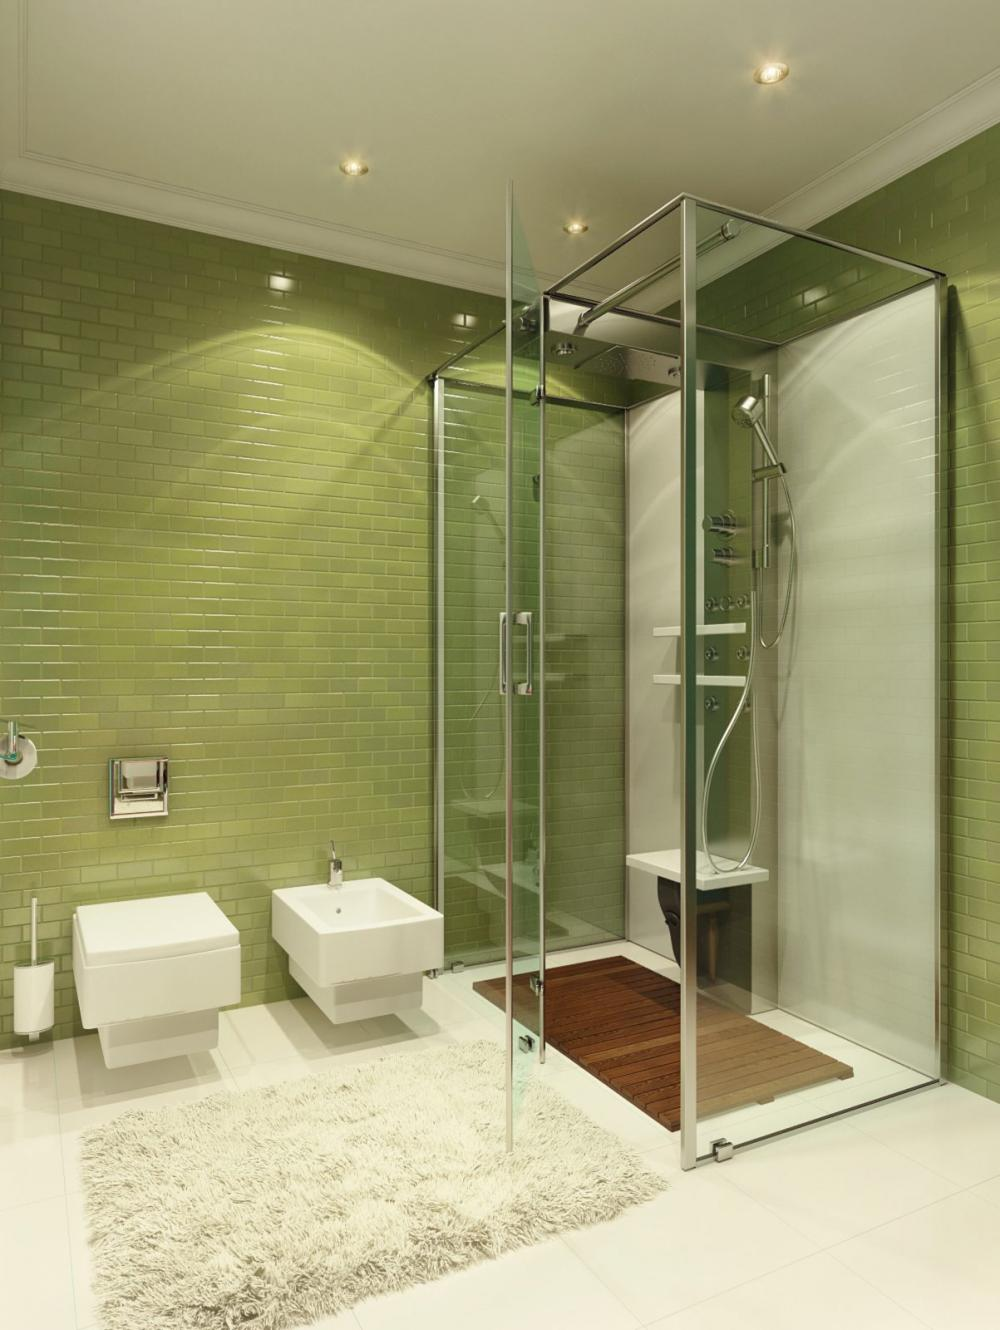 Bathroom Captovating Barhroom Design With